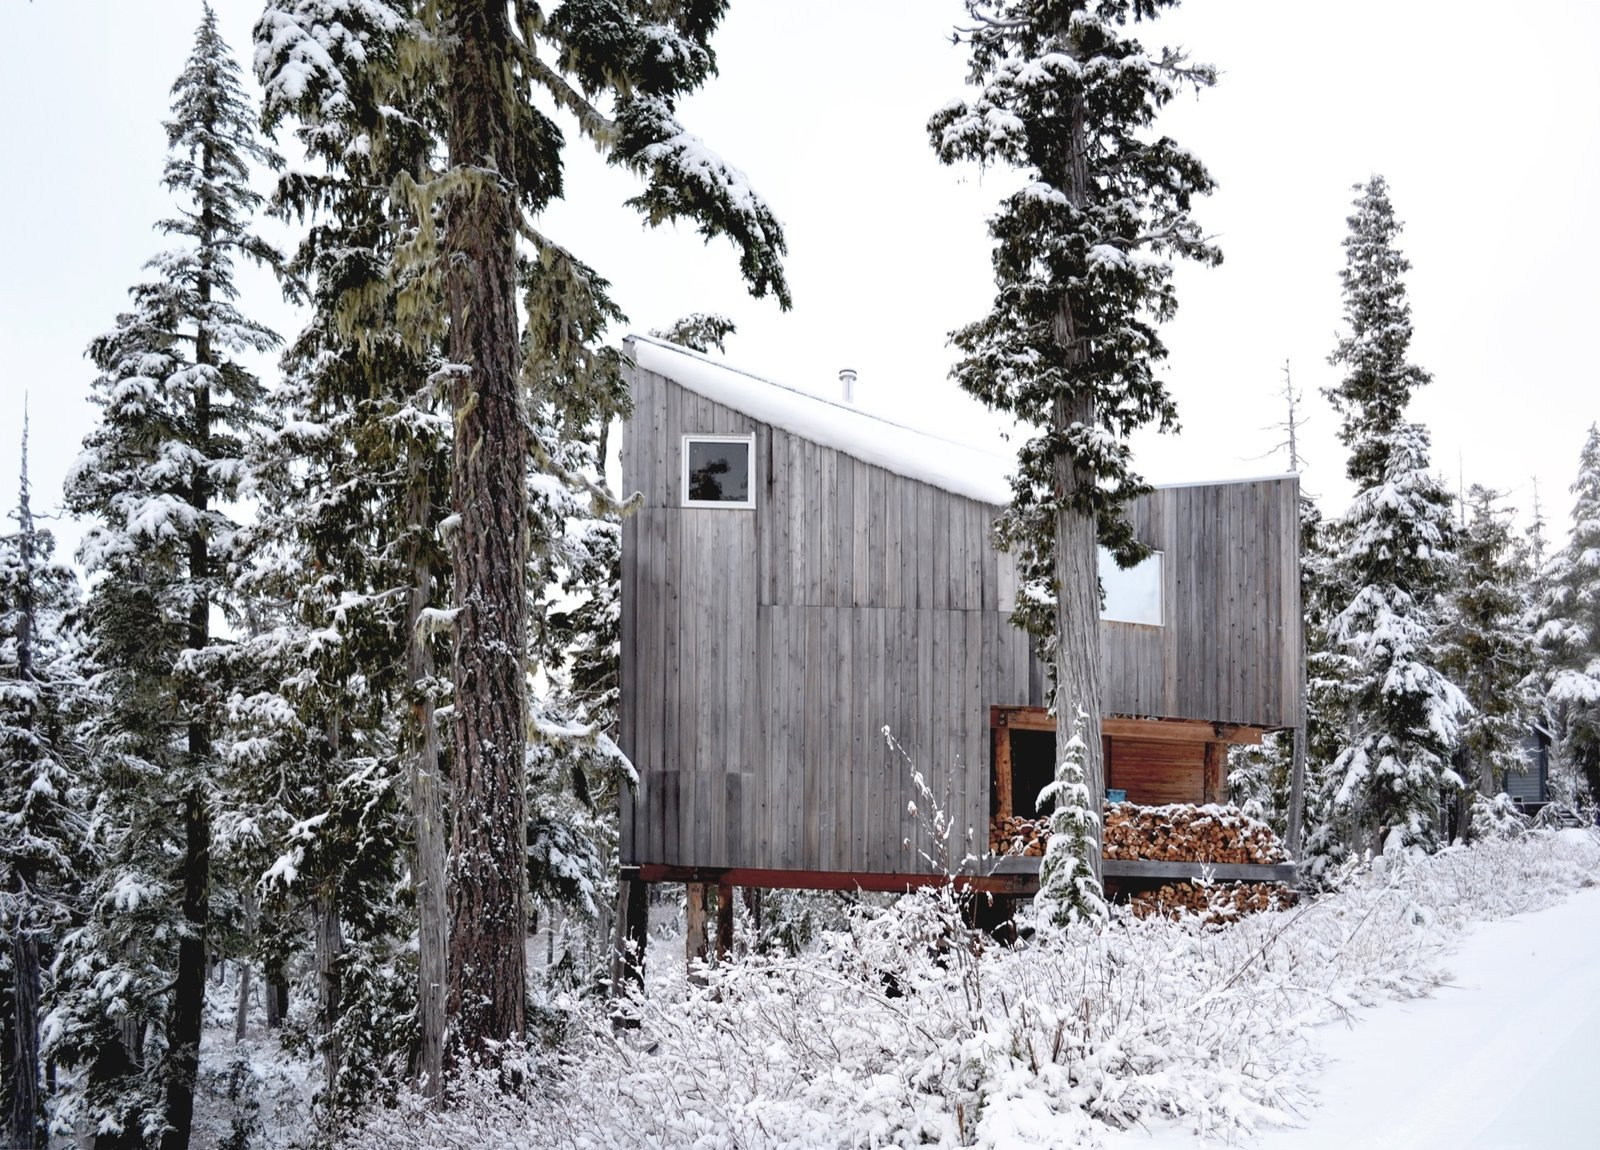 Architecture, Made On Site | Vancouver Island, Canada  The husband-and-wife founders of Scott and Scott Architects design-built their own off-grid cabin with the adventurous spirit of the powder boarders they both are.   Cabin Love by Sandra Henderson